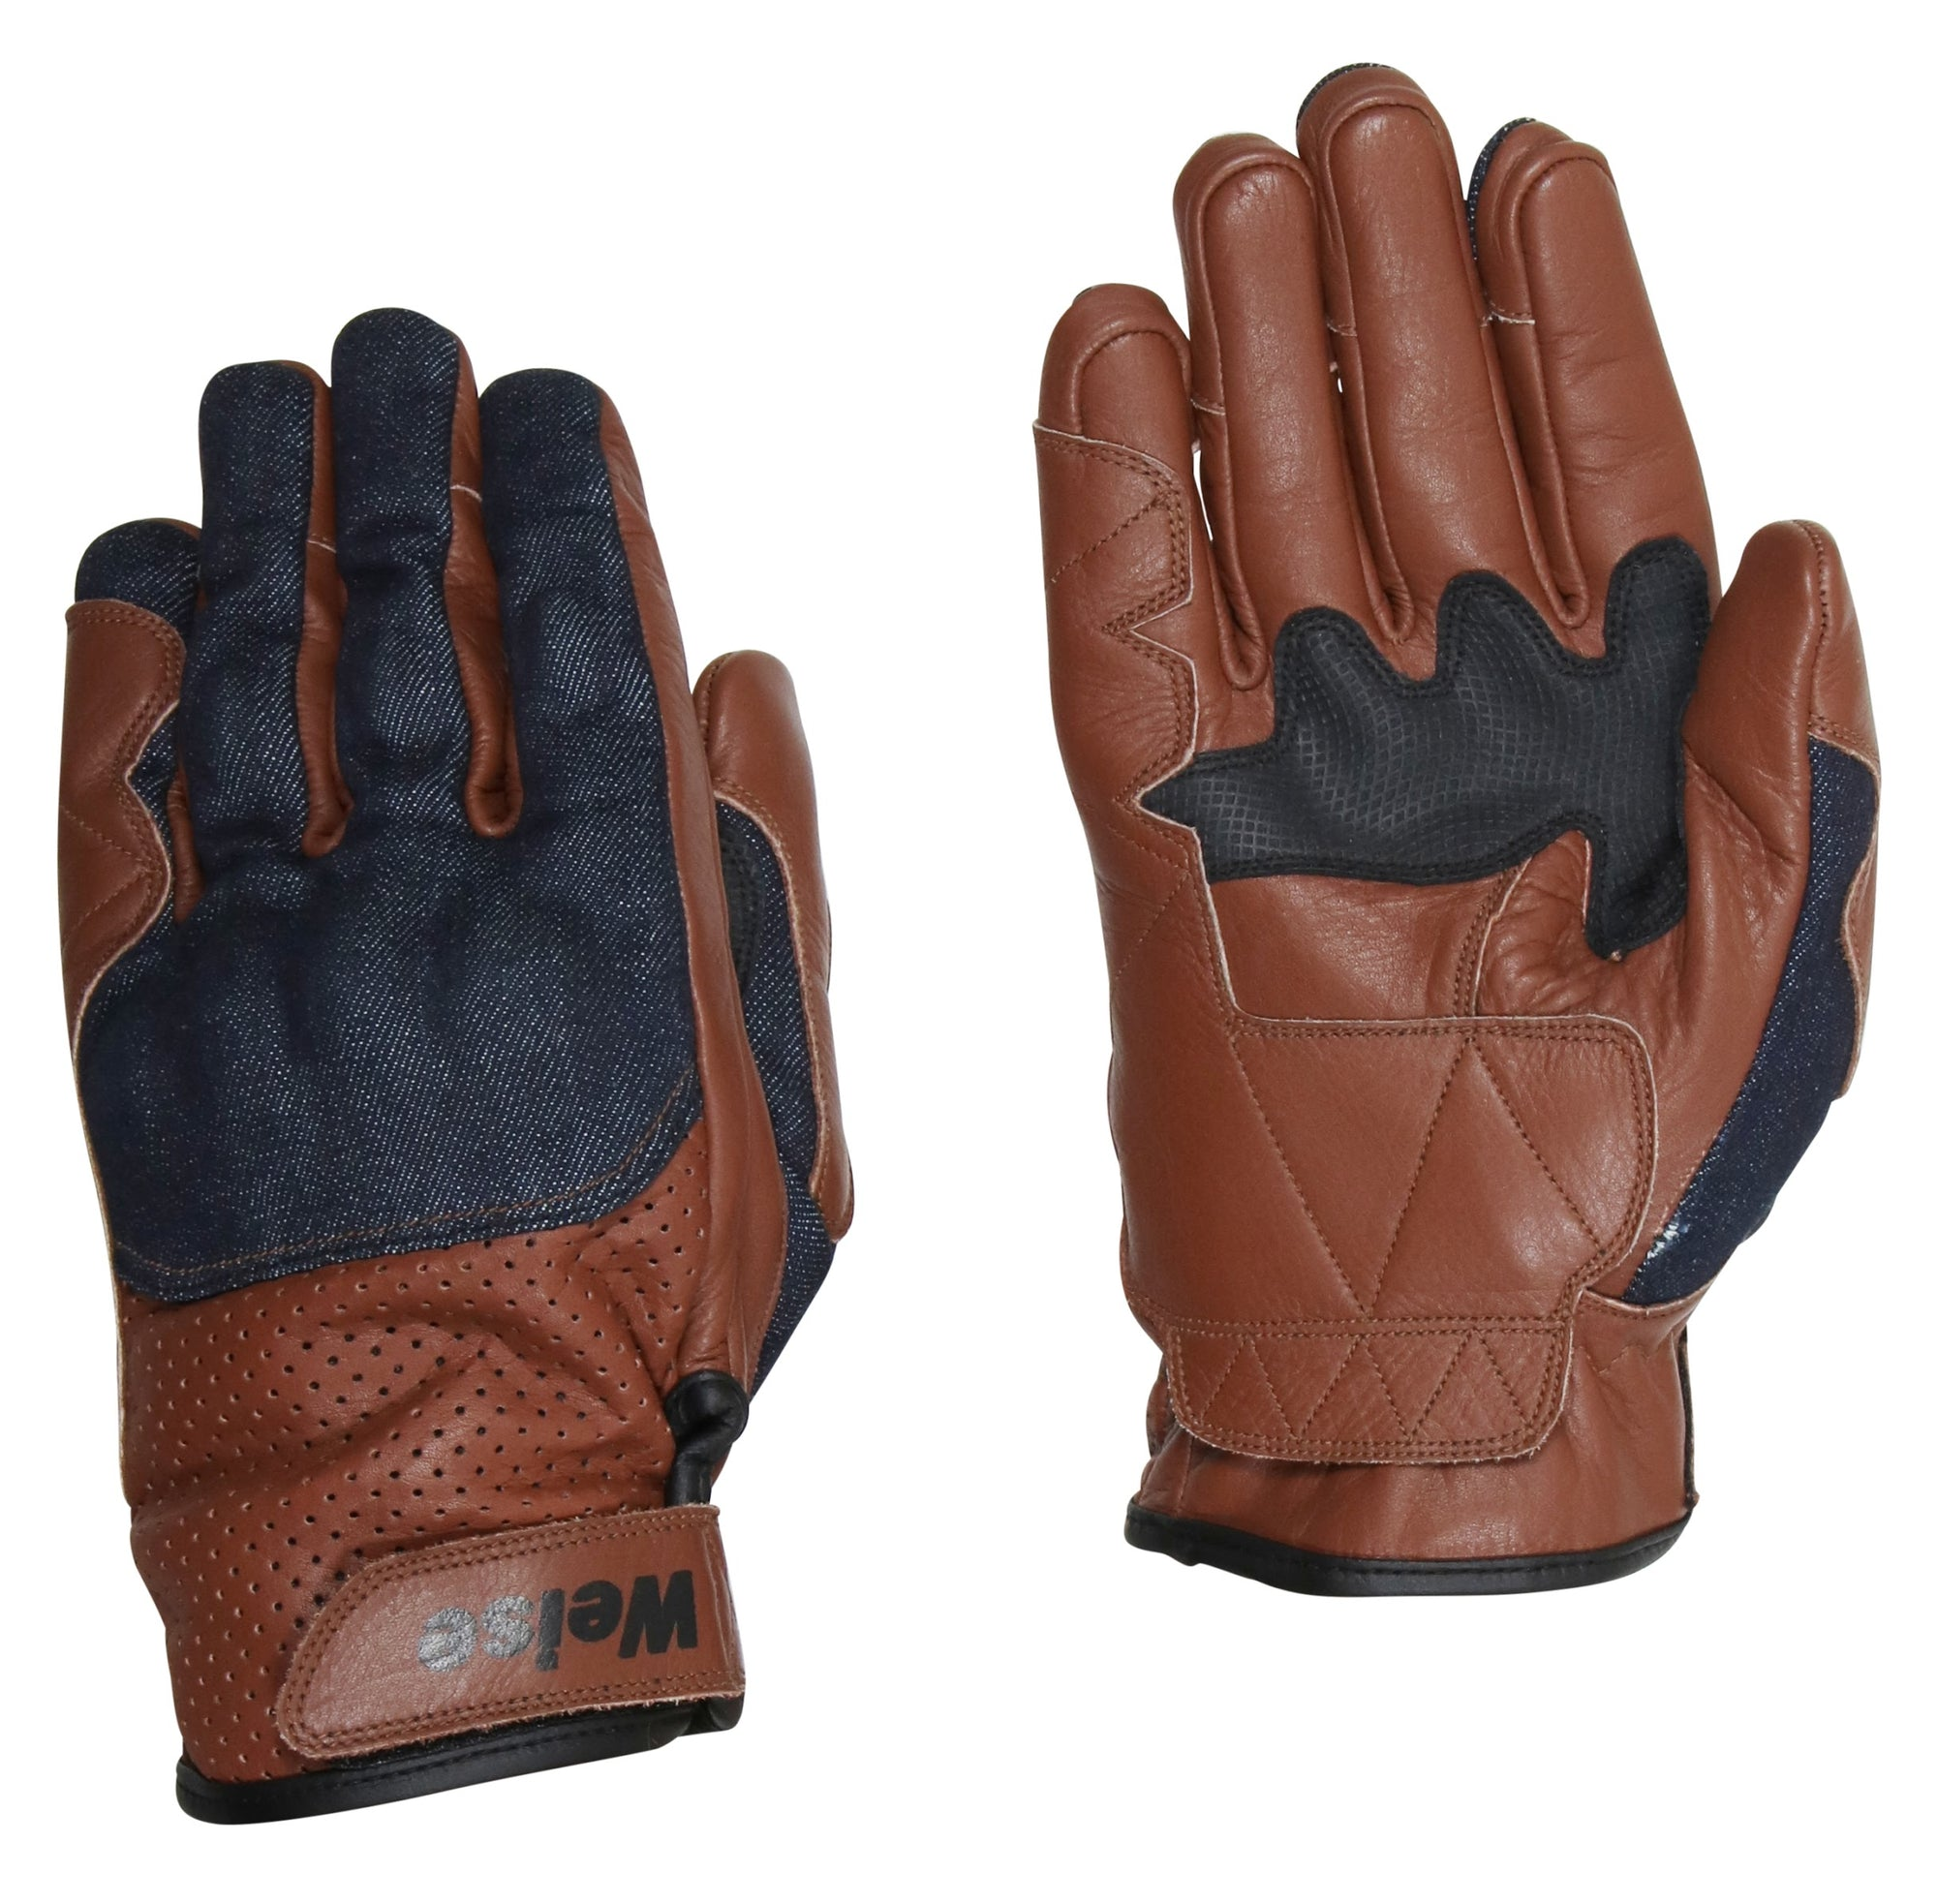 Weise Glove - Fury, Gloves, Weise - Averys Motorcycles